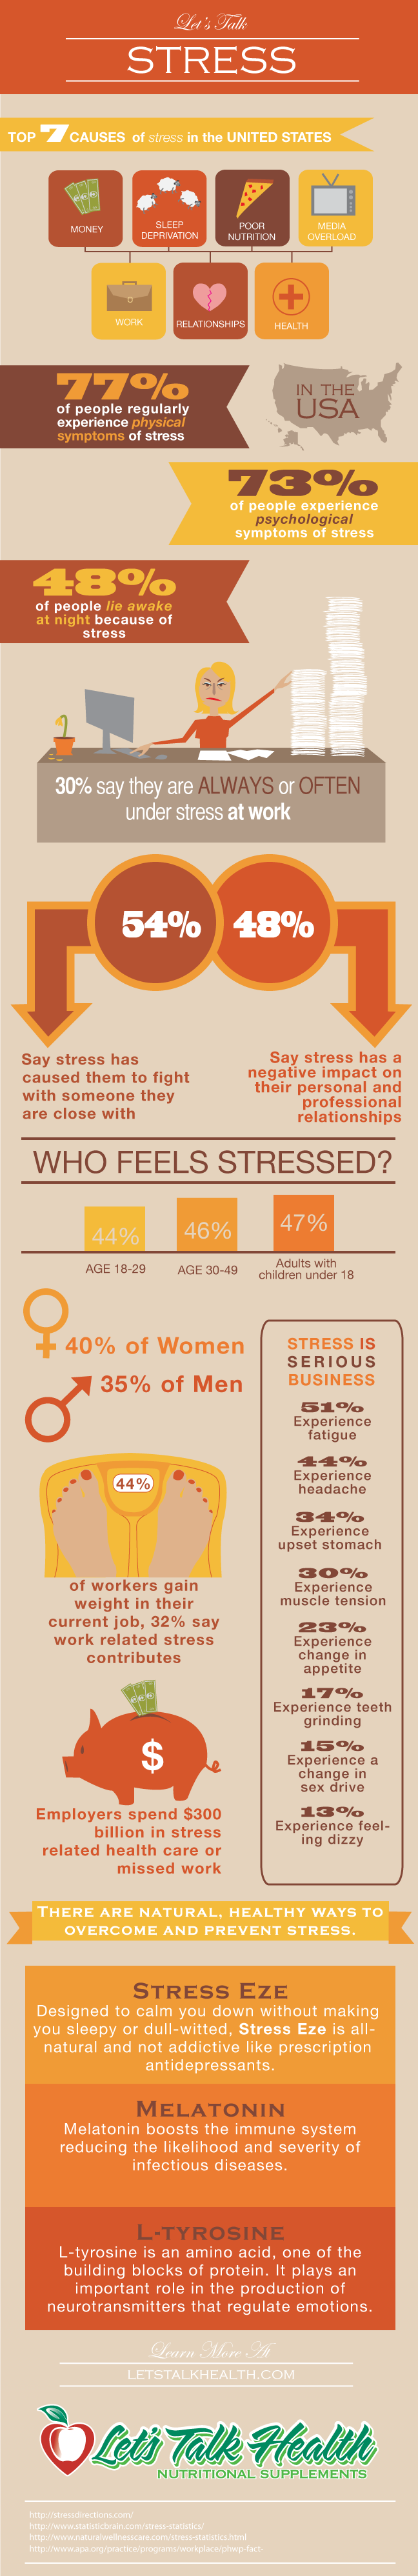 Facts About Stress